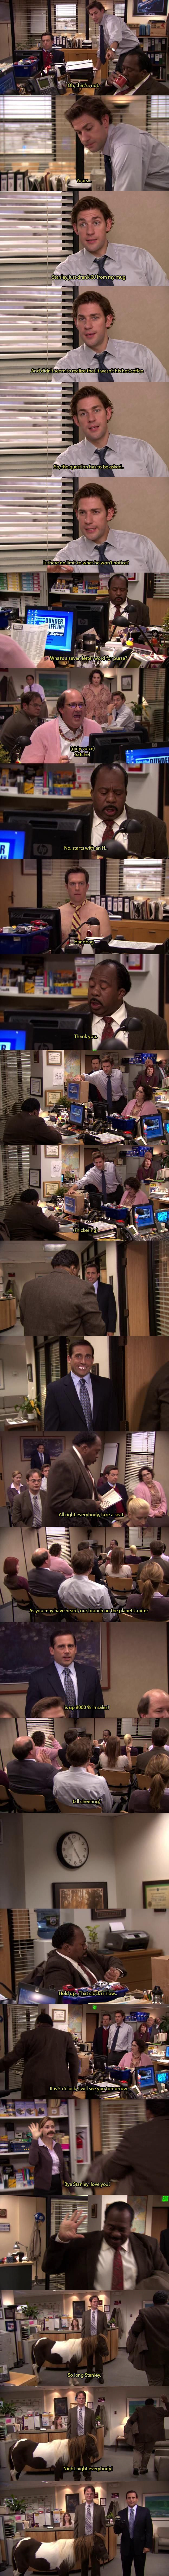 2nd favorite opening to The Office.